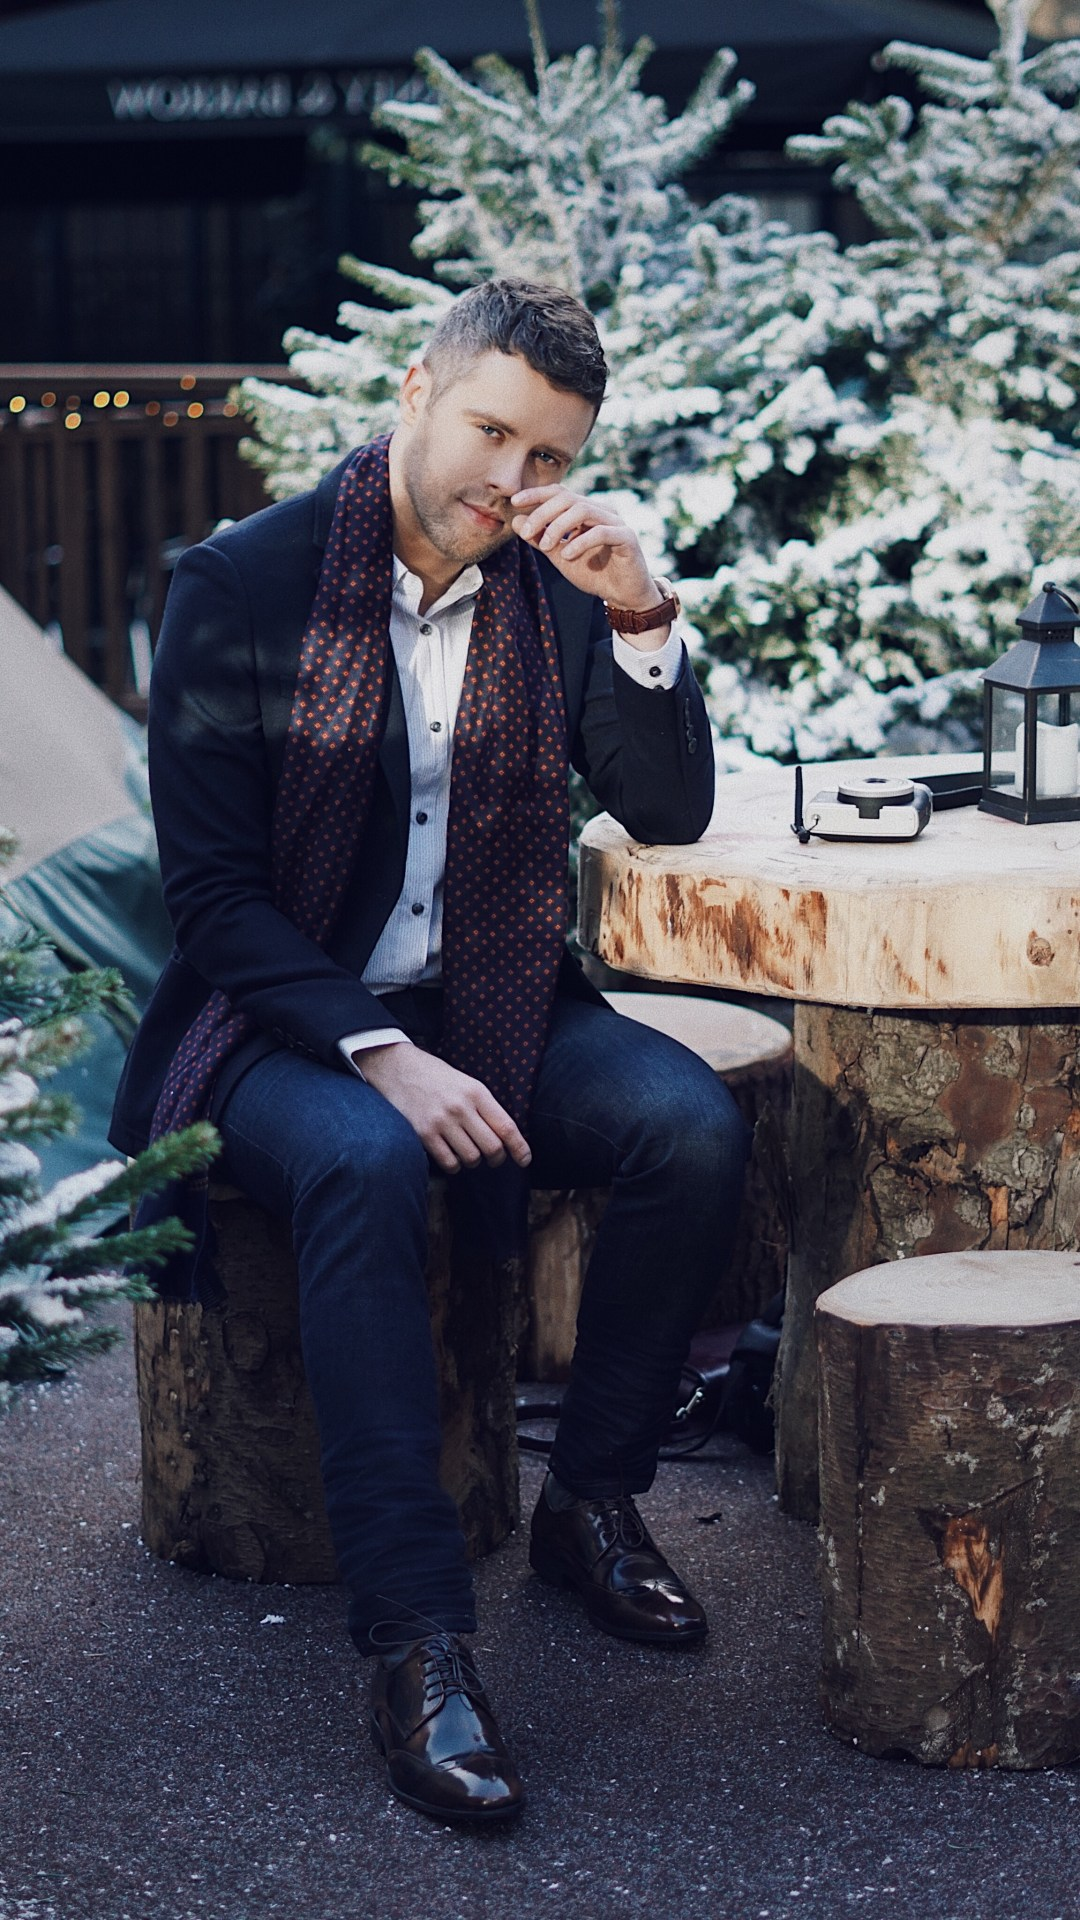 The Winter Forest at Broadgate. Wearing a navy textured single breasted wool blend jacket from J by Jasper Conran, navy geometric print dress scarf from Hammond & Co. by Patrick Grant, white striped print tailored fit shirt from The Collection, dark blue 'Bryson' skinny jeans from Wrangle, brown patent leather Derby shoes from Red Herring and Sekel Role Gold Watch With Silver Dial and Brown Leather Strap from Kronaby Sweden. Blog by Skirmantas Petraitis.